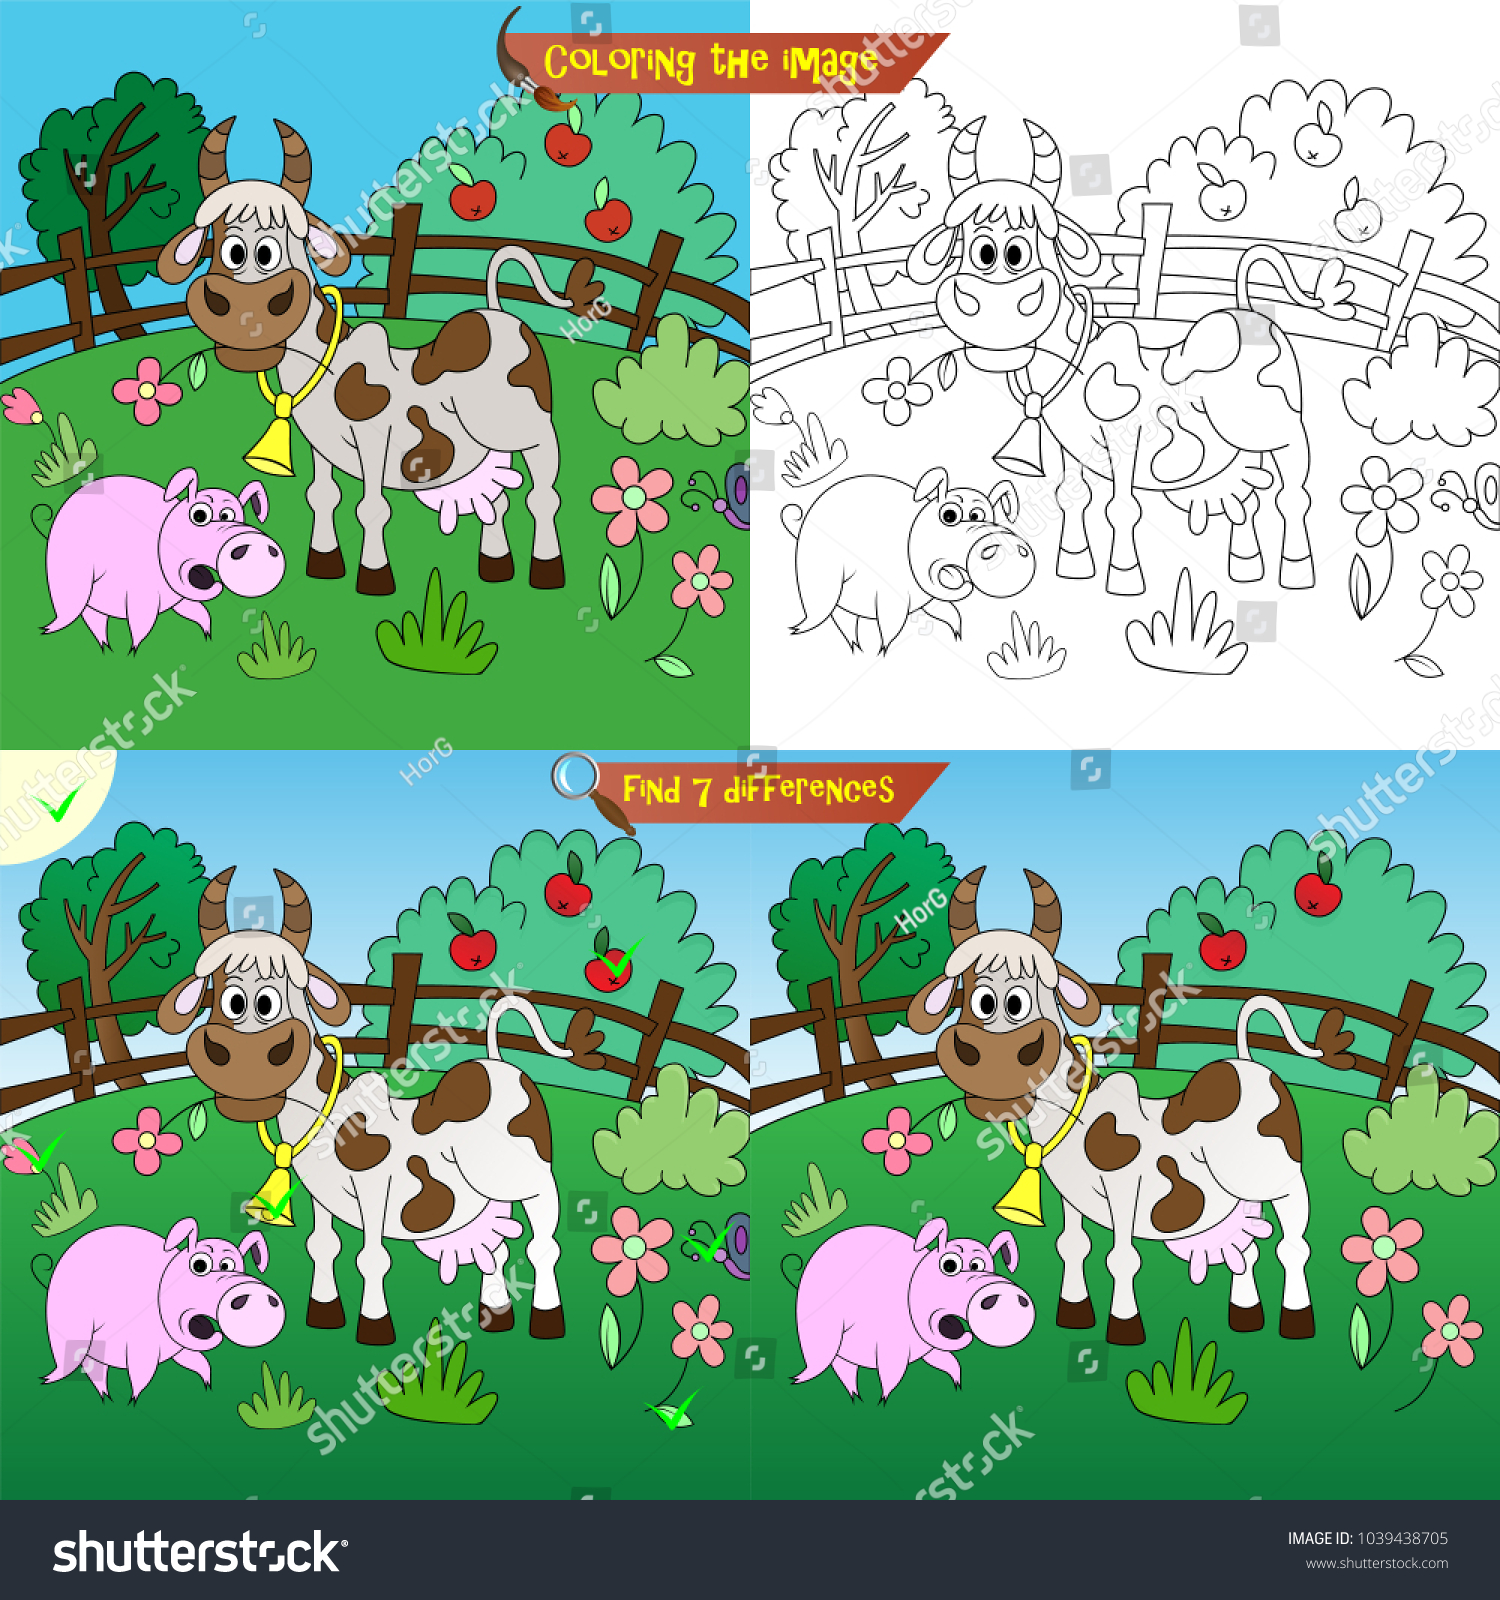 Find Differences Education Game Children Coloring Stock Photo (Photo ...